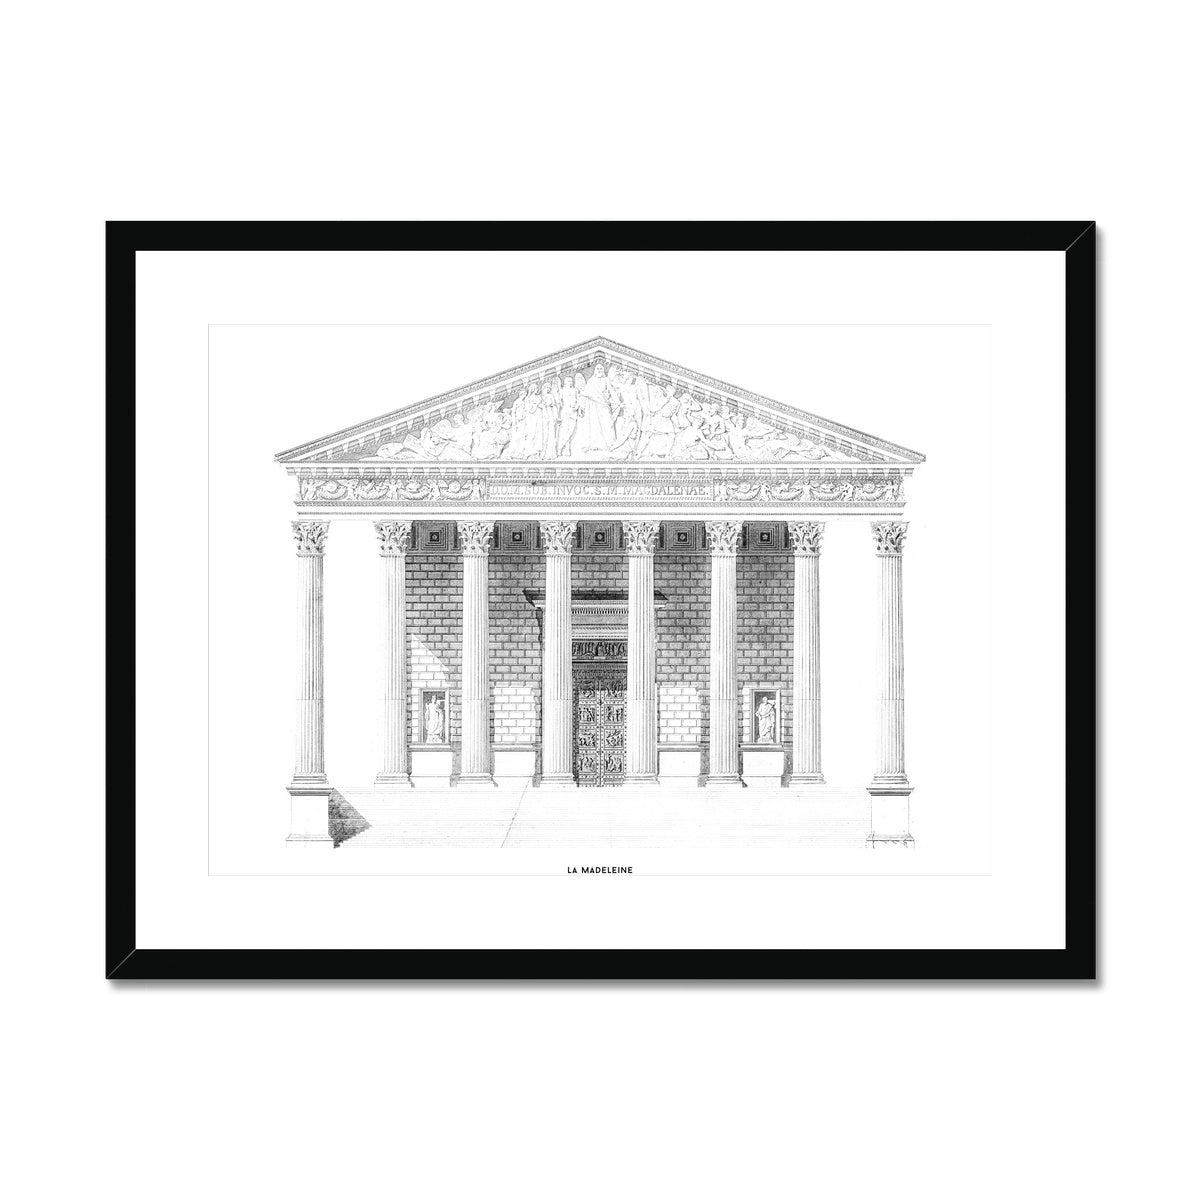 La Madeleine - Primary Elevation - White -  Framed & Mounted Print